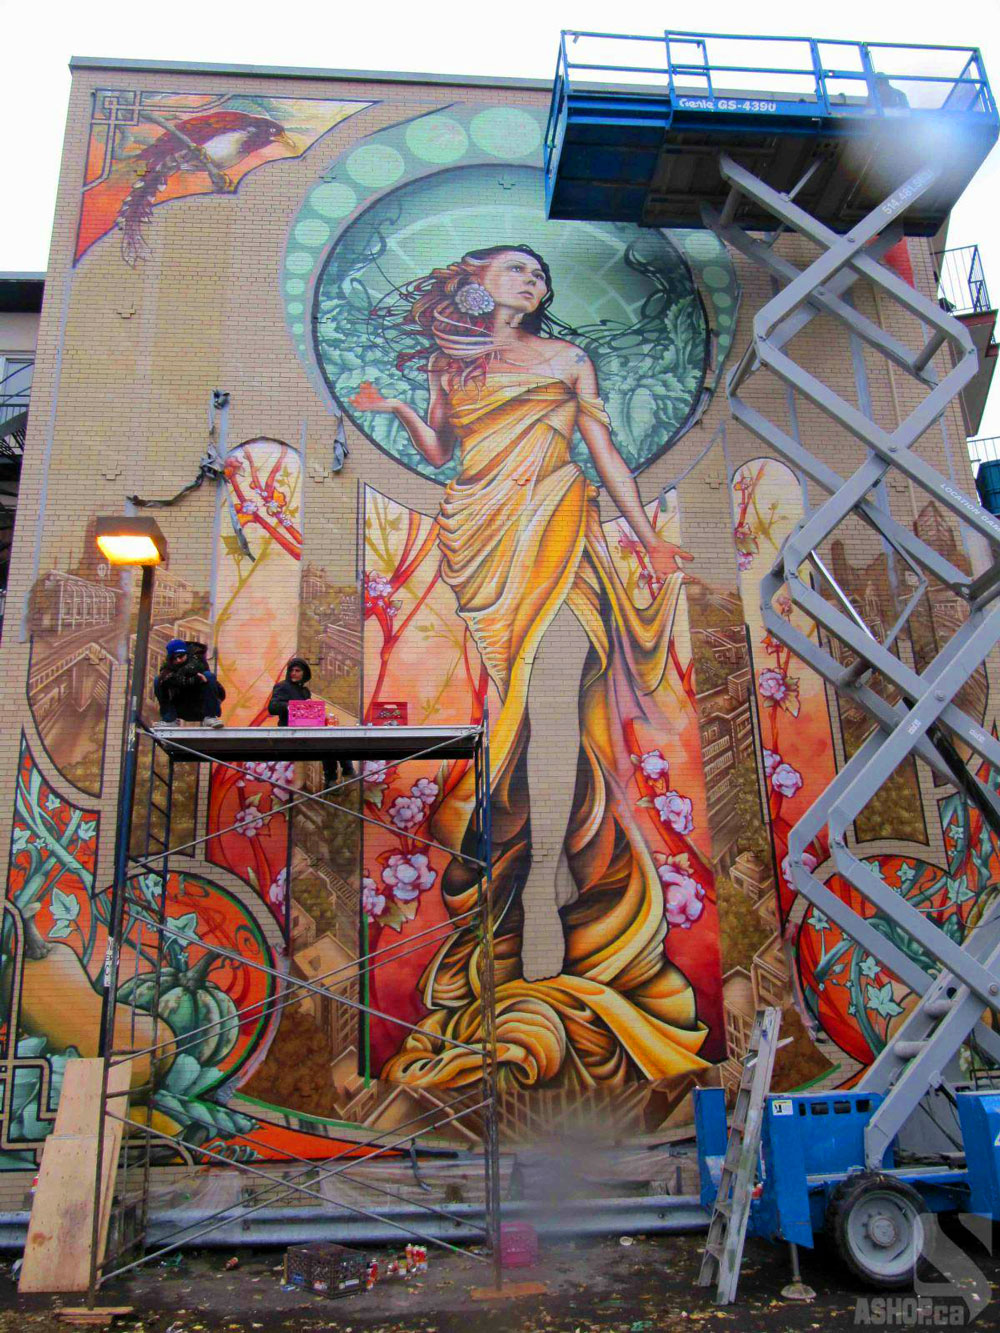 Graffiti artists fluke guillaume lapointe antonin lambert dodo ose and bruno rathbone spent two weeks researching the project and gathering tools they